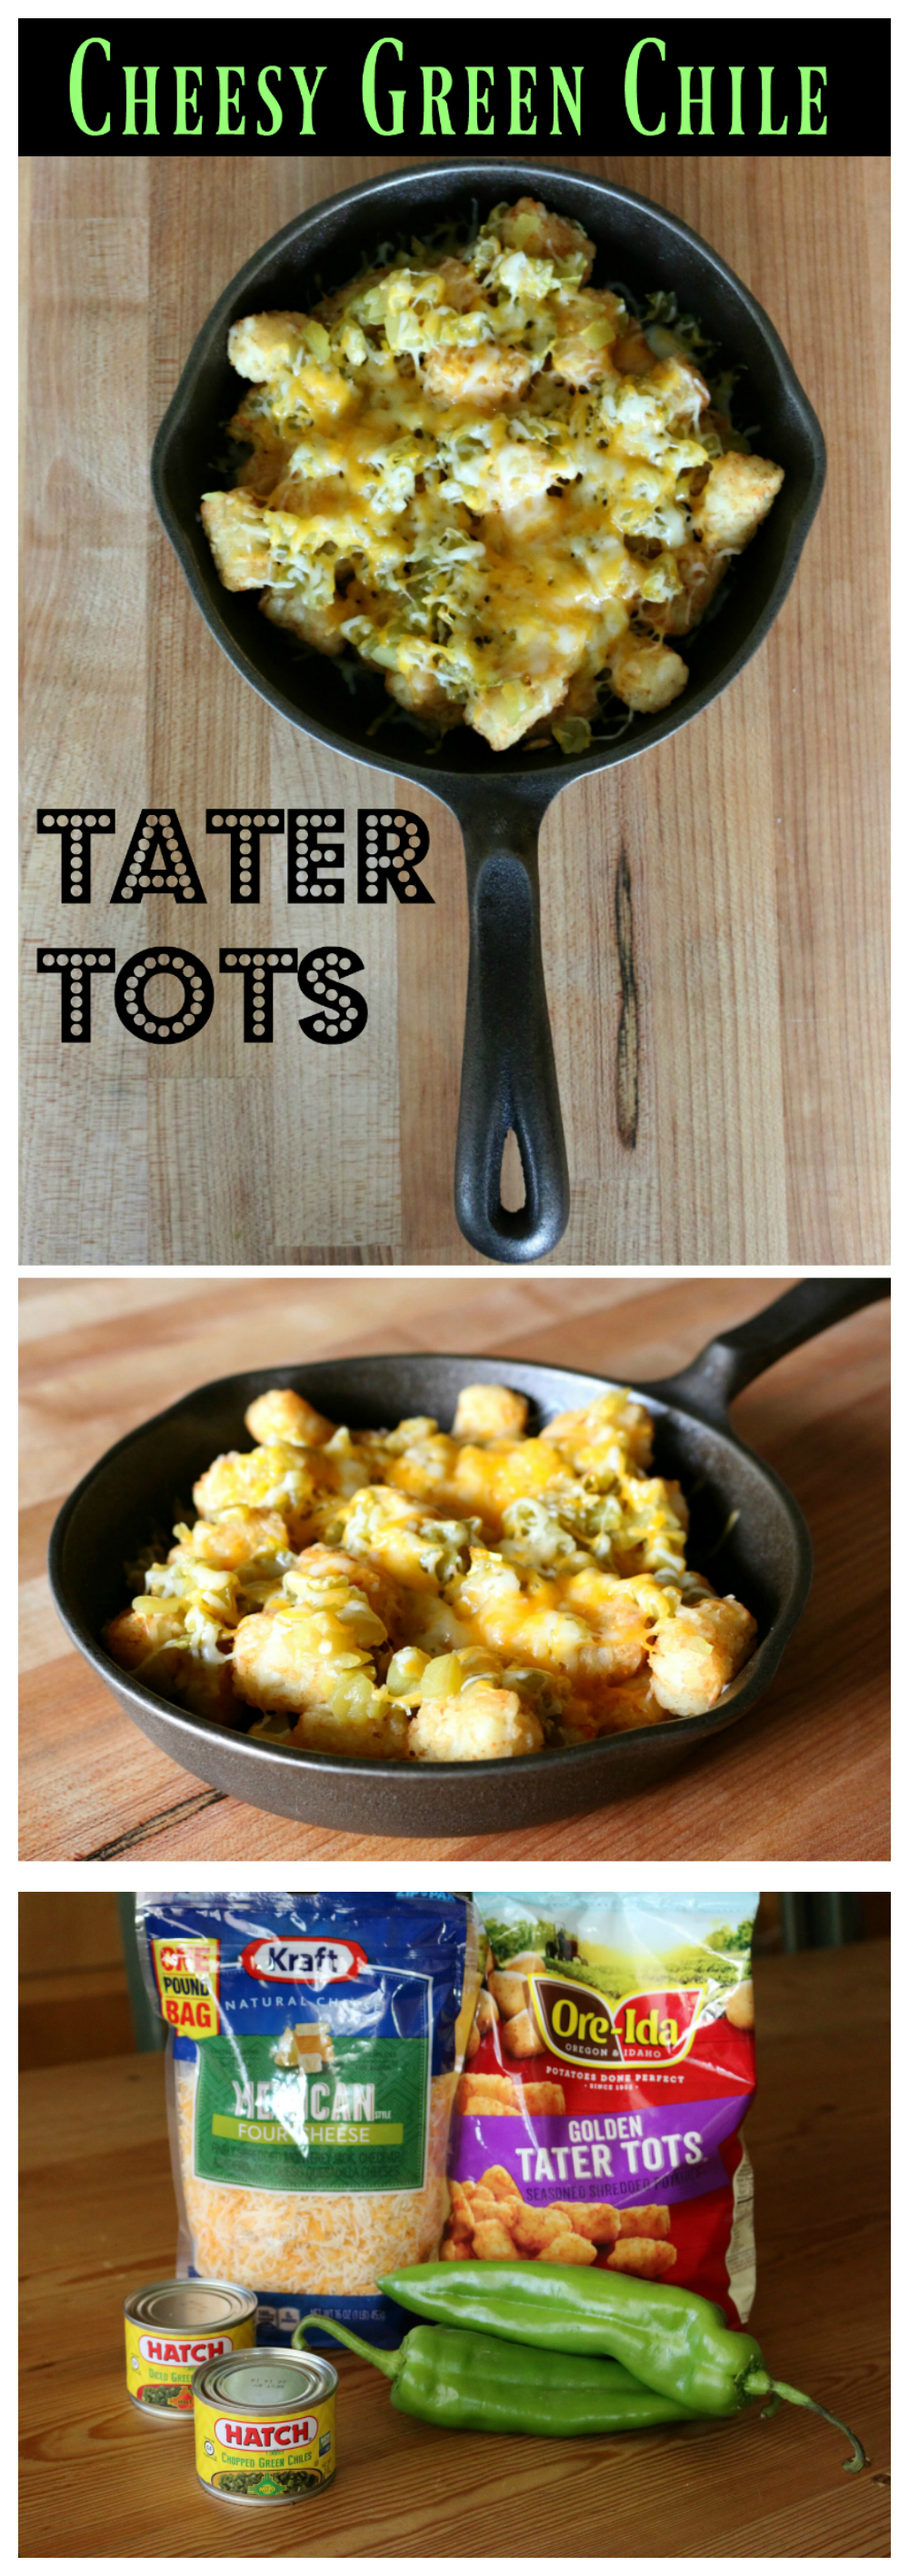 Easy and Simple Appetizer Recipe for Green Chile Tater Tots CeceliasGoodStuff.com Good Food for Good People